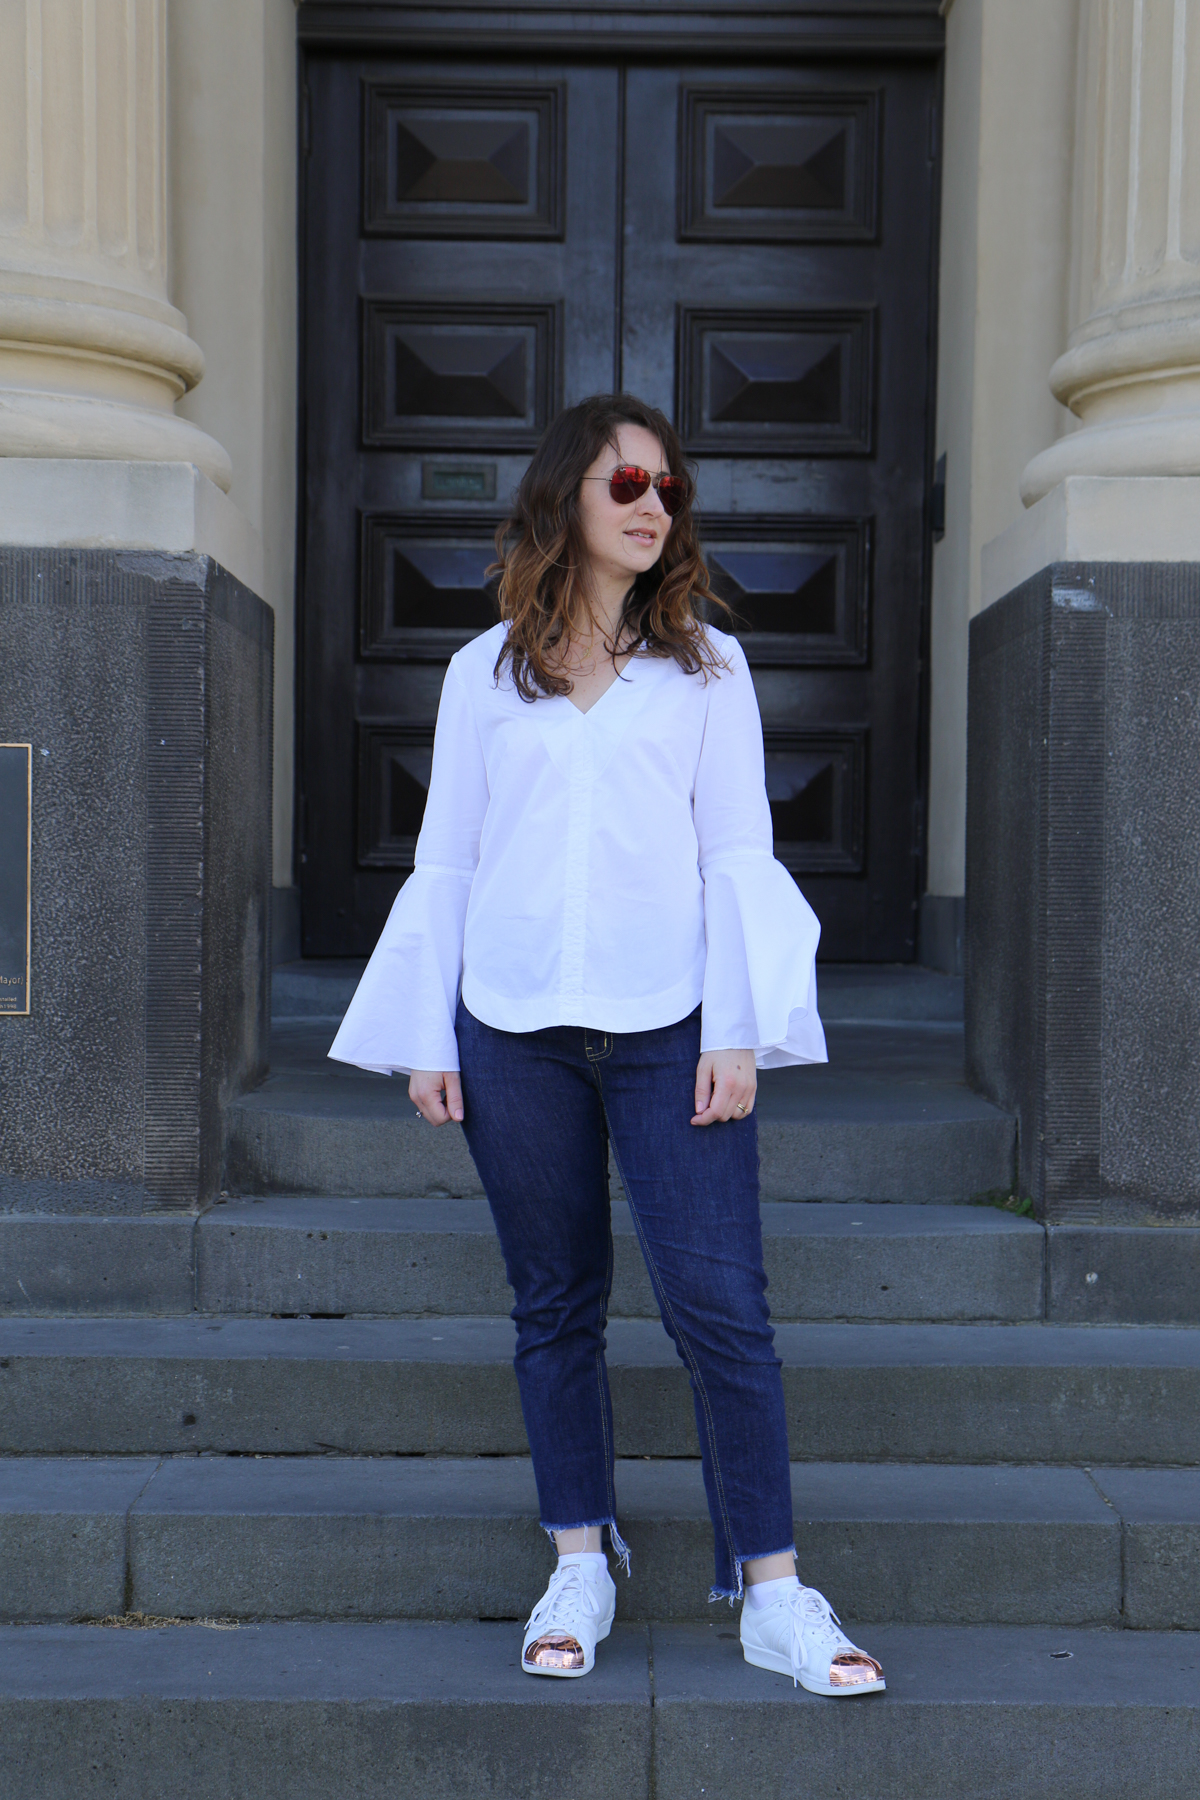 Megan Nielsen Ash Jeans Version 1 slim leg in Potter Textiles denim with frayed step hem paired with white shirting Dove blouse